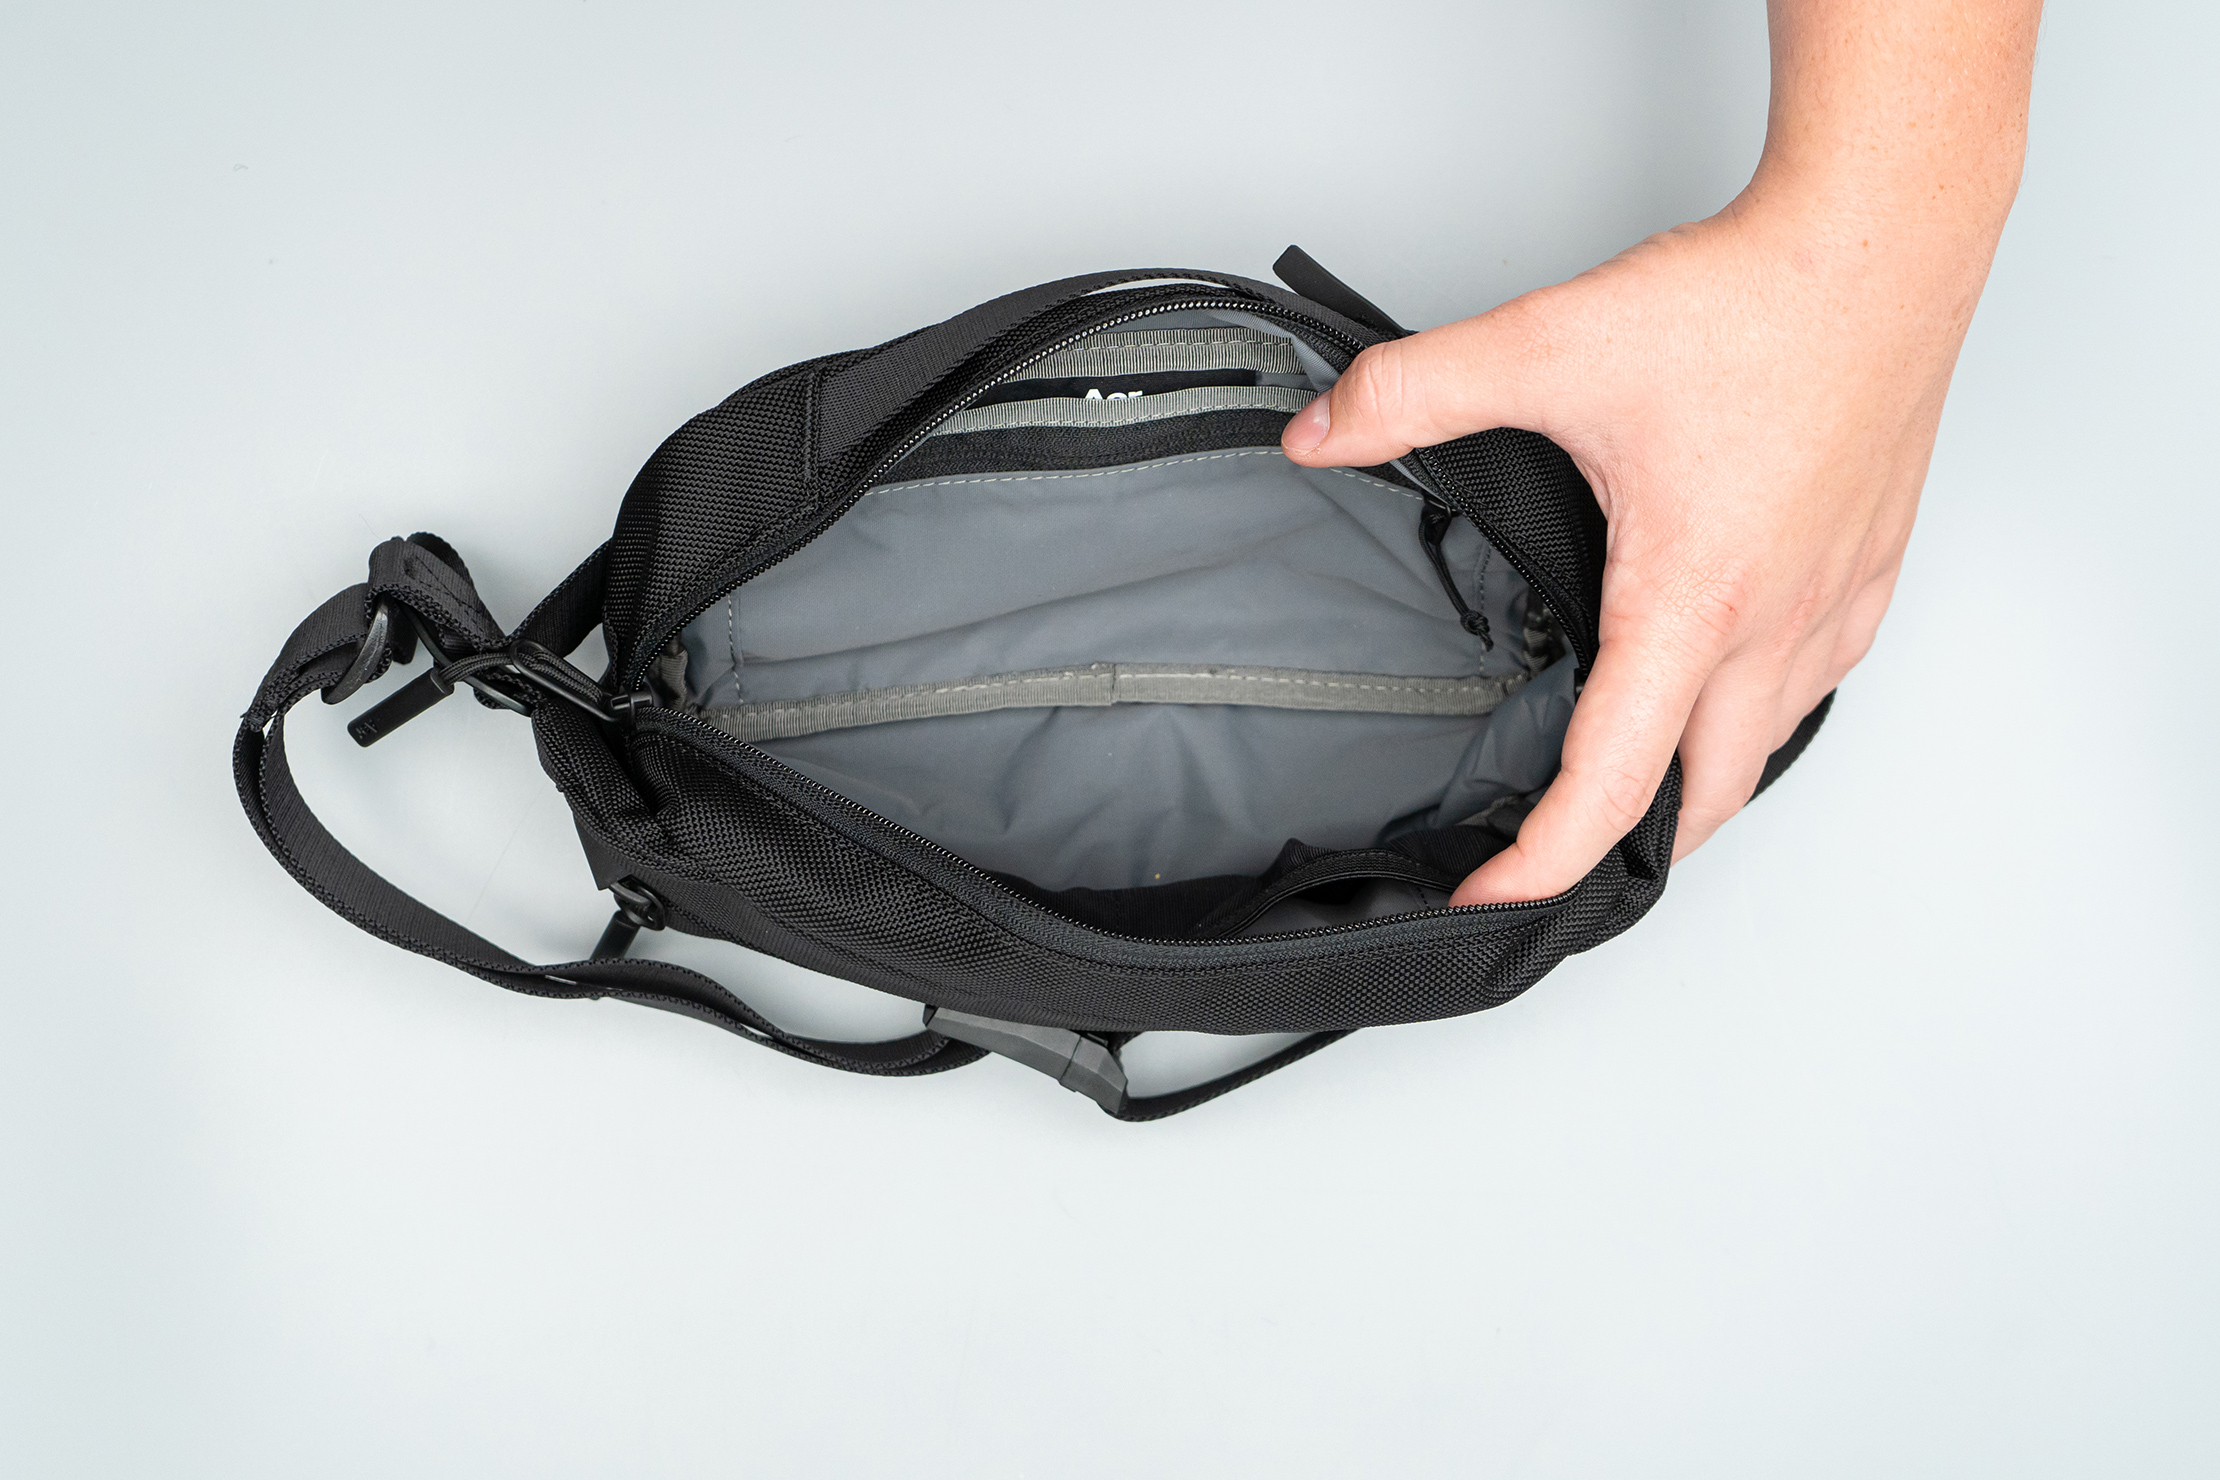 Aer City Sling 2 Main Compartment Empty